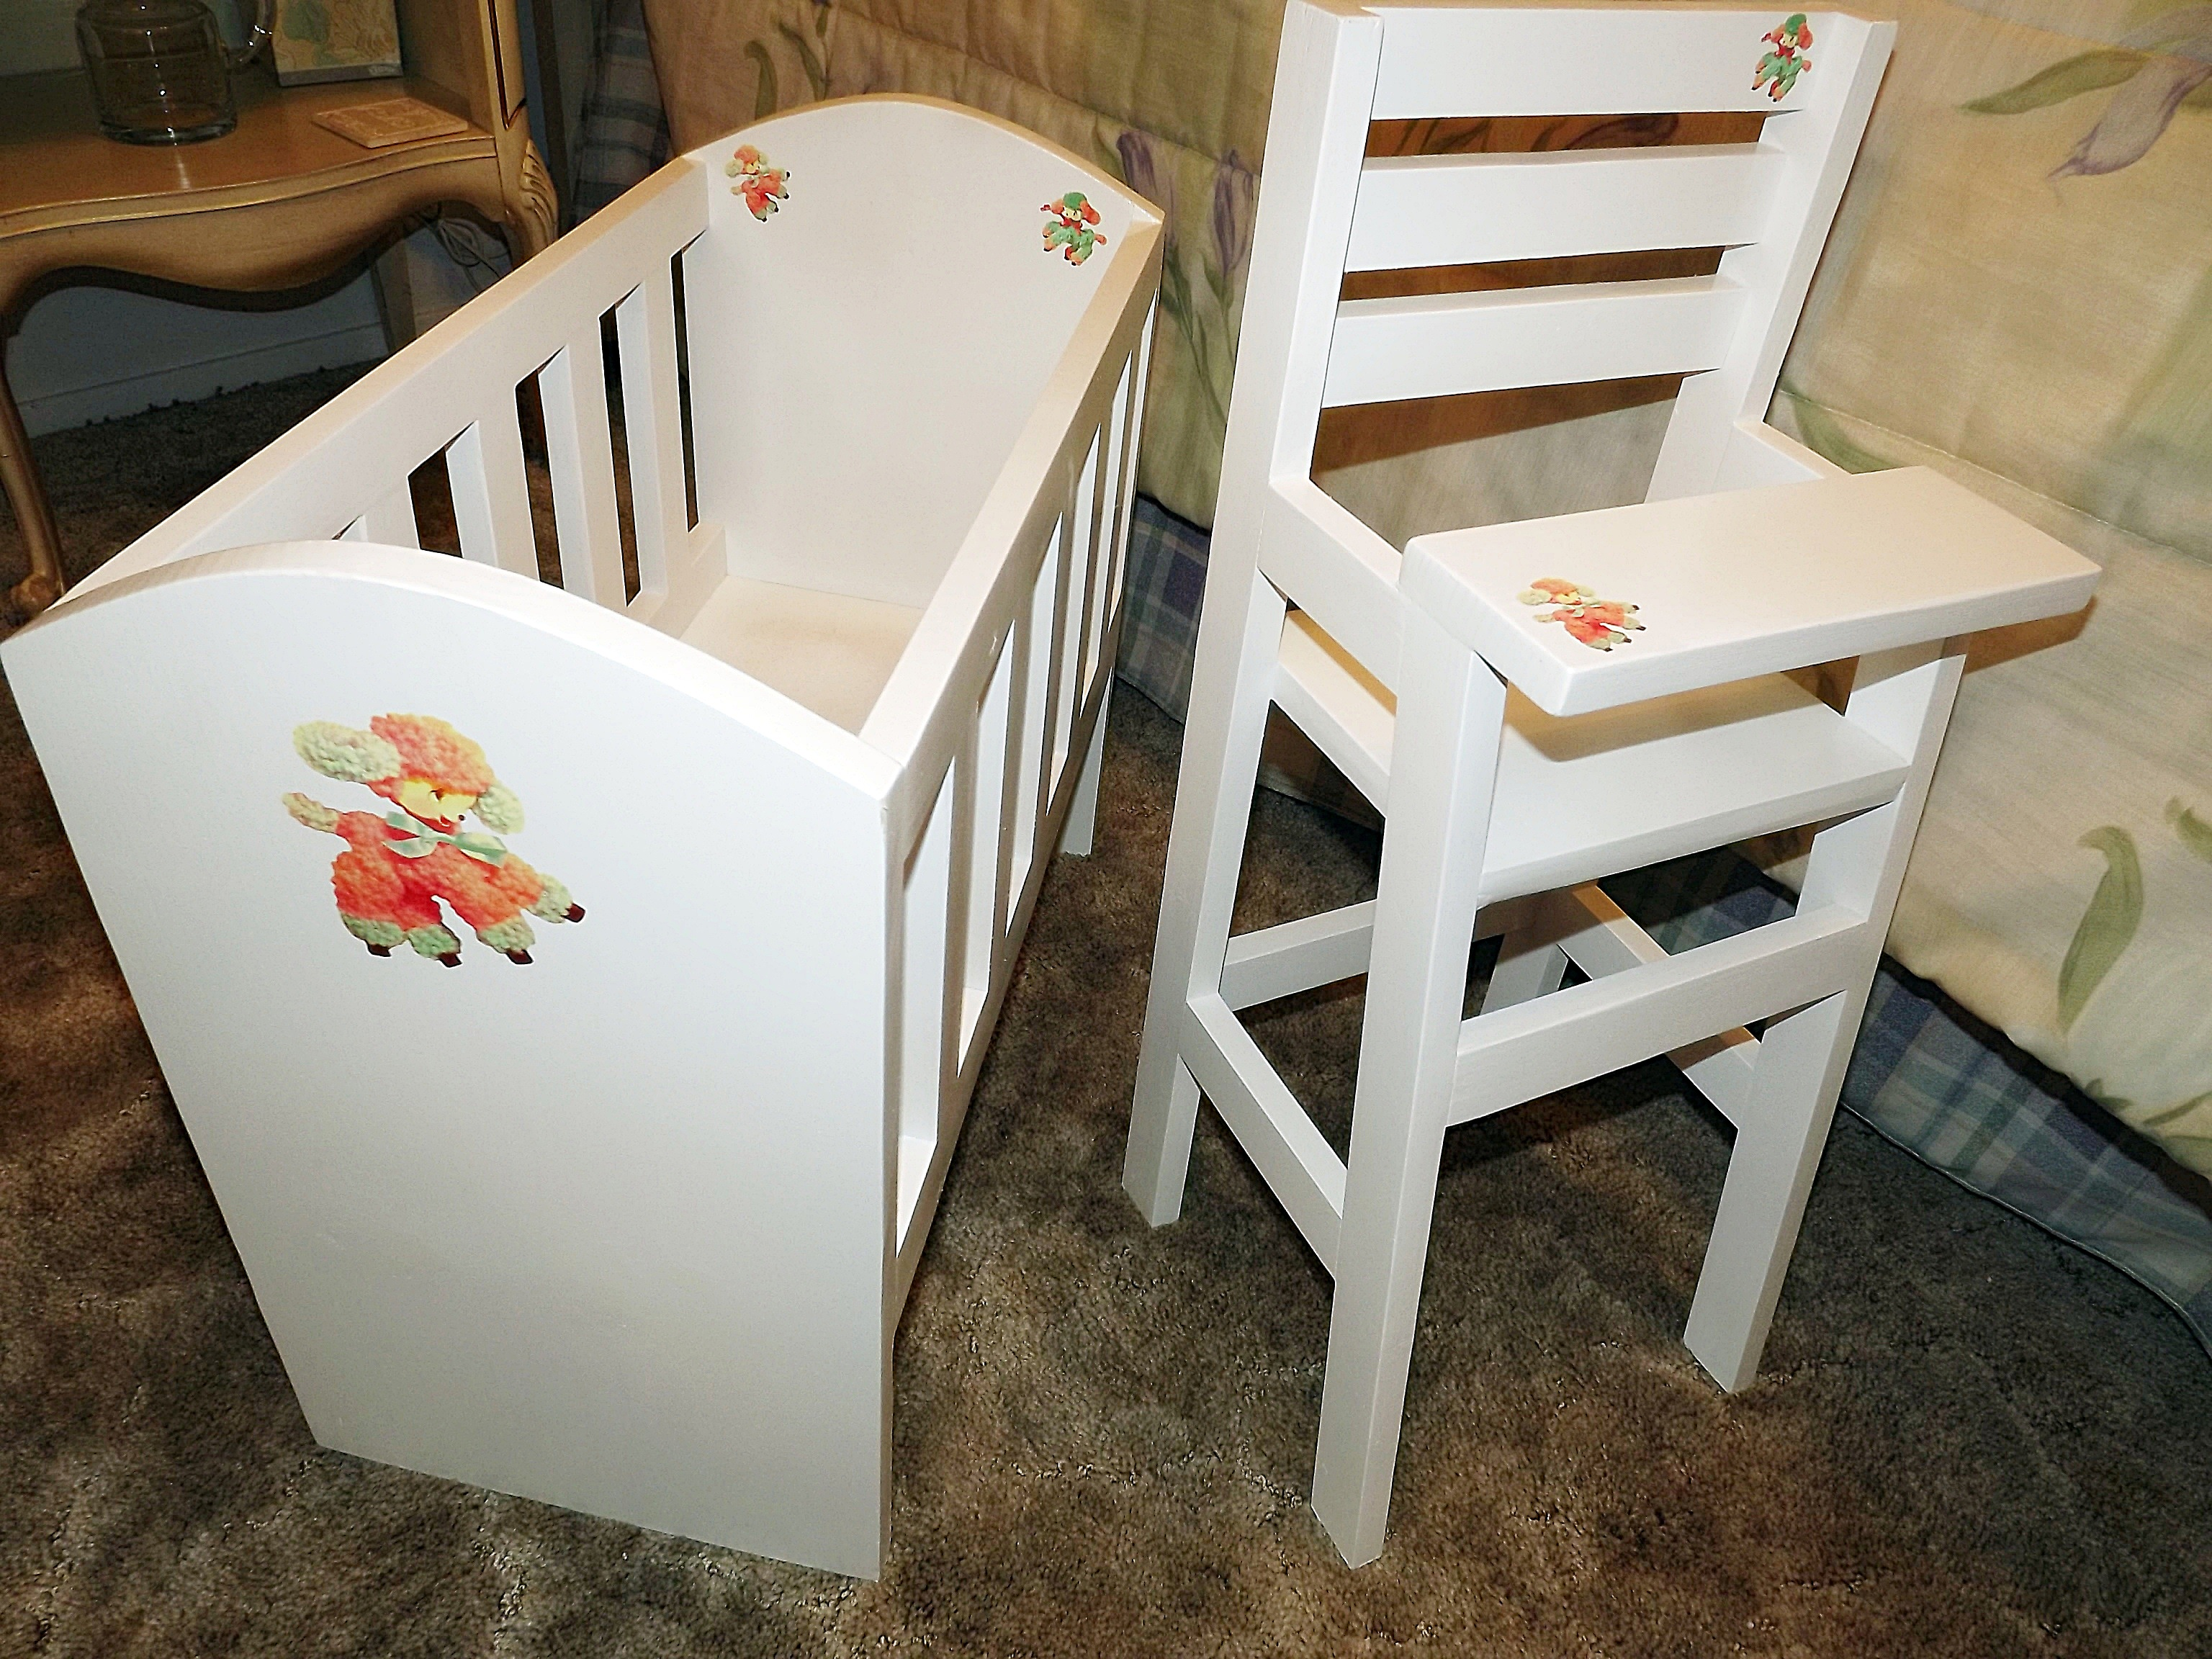 ana white olivia s doll crib and high chair sets diy projects